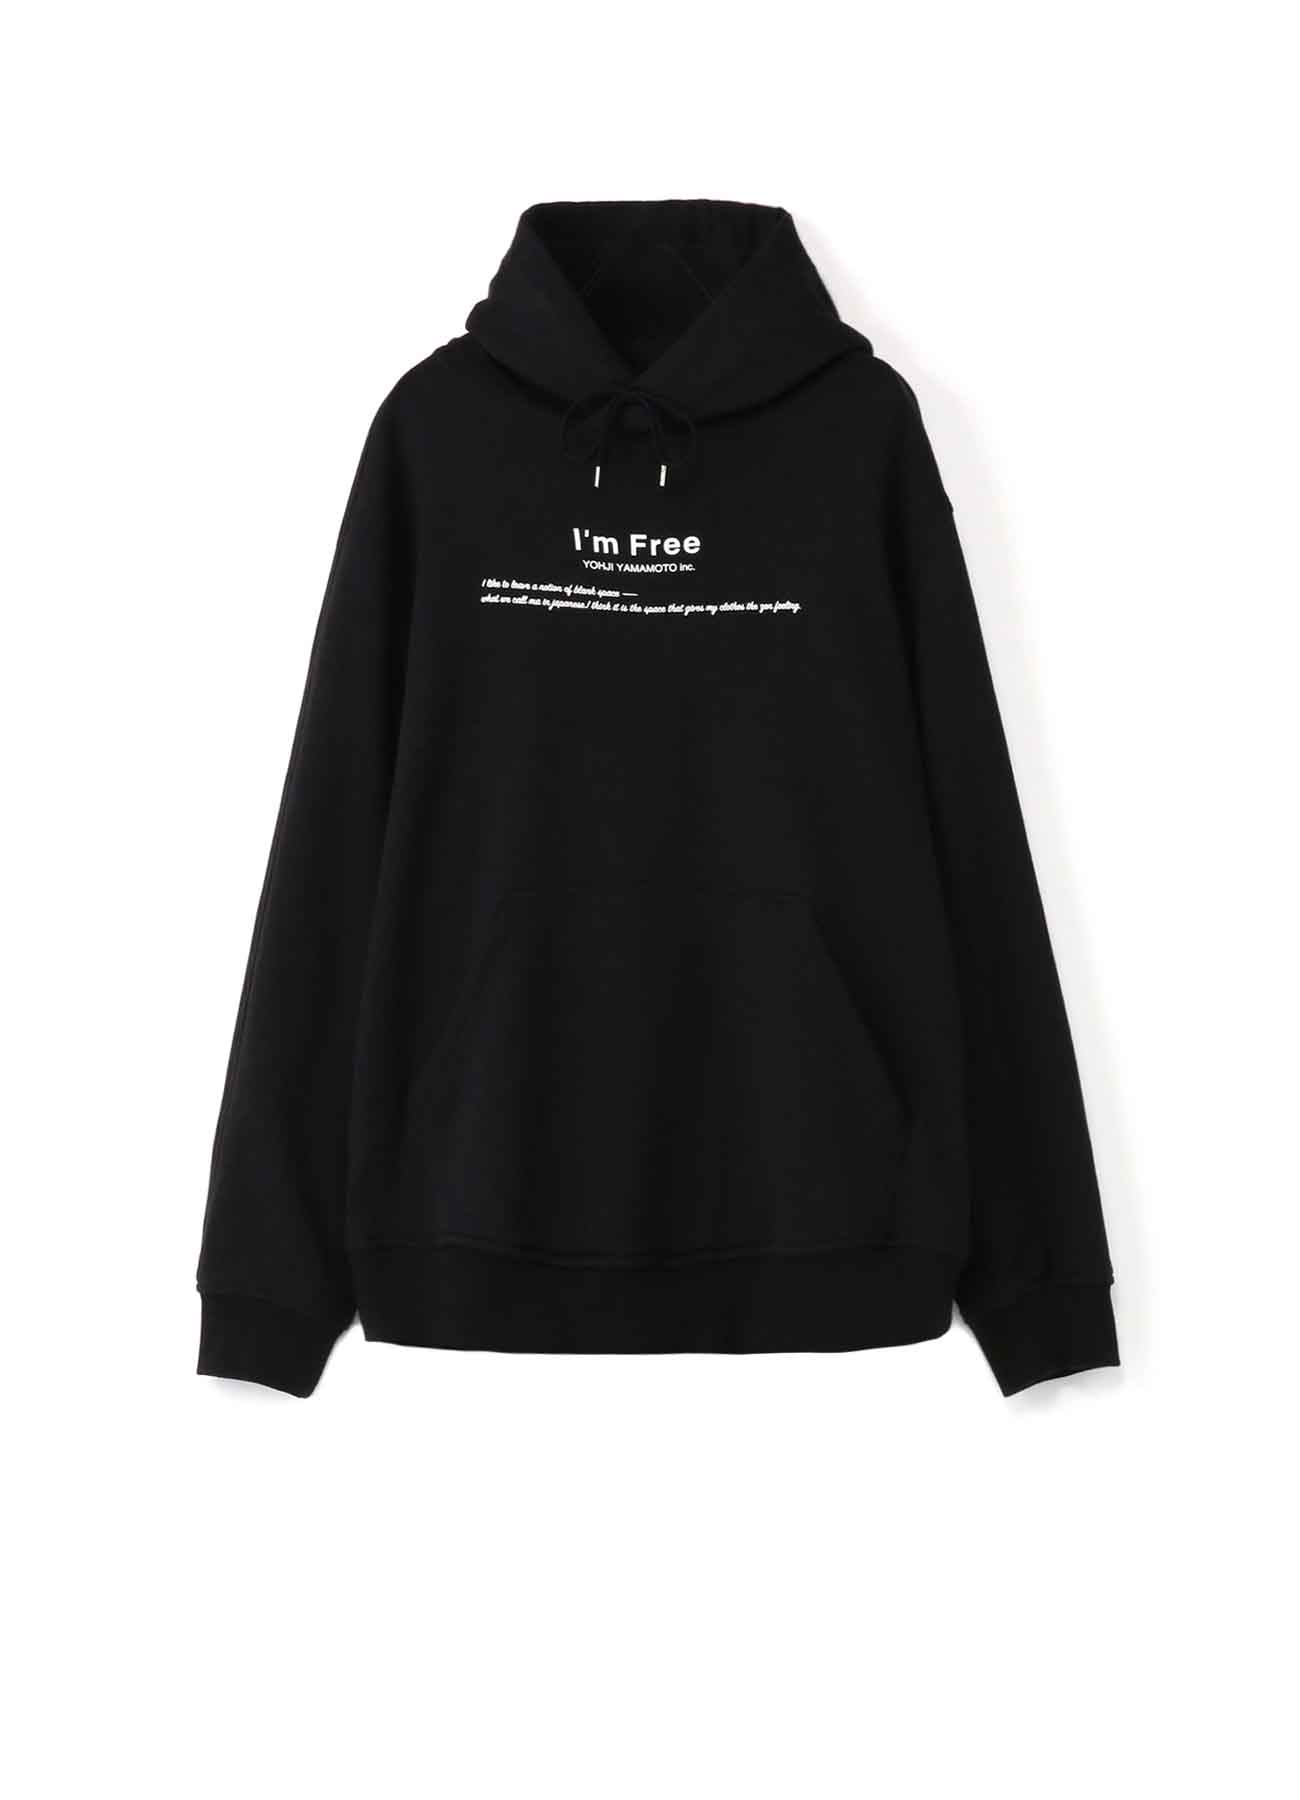 French Terry Stitch Work I'm Free Message Hoodie